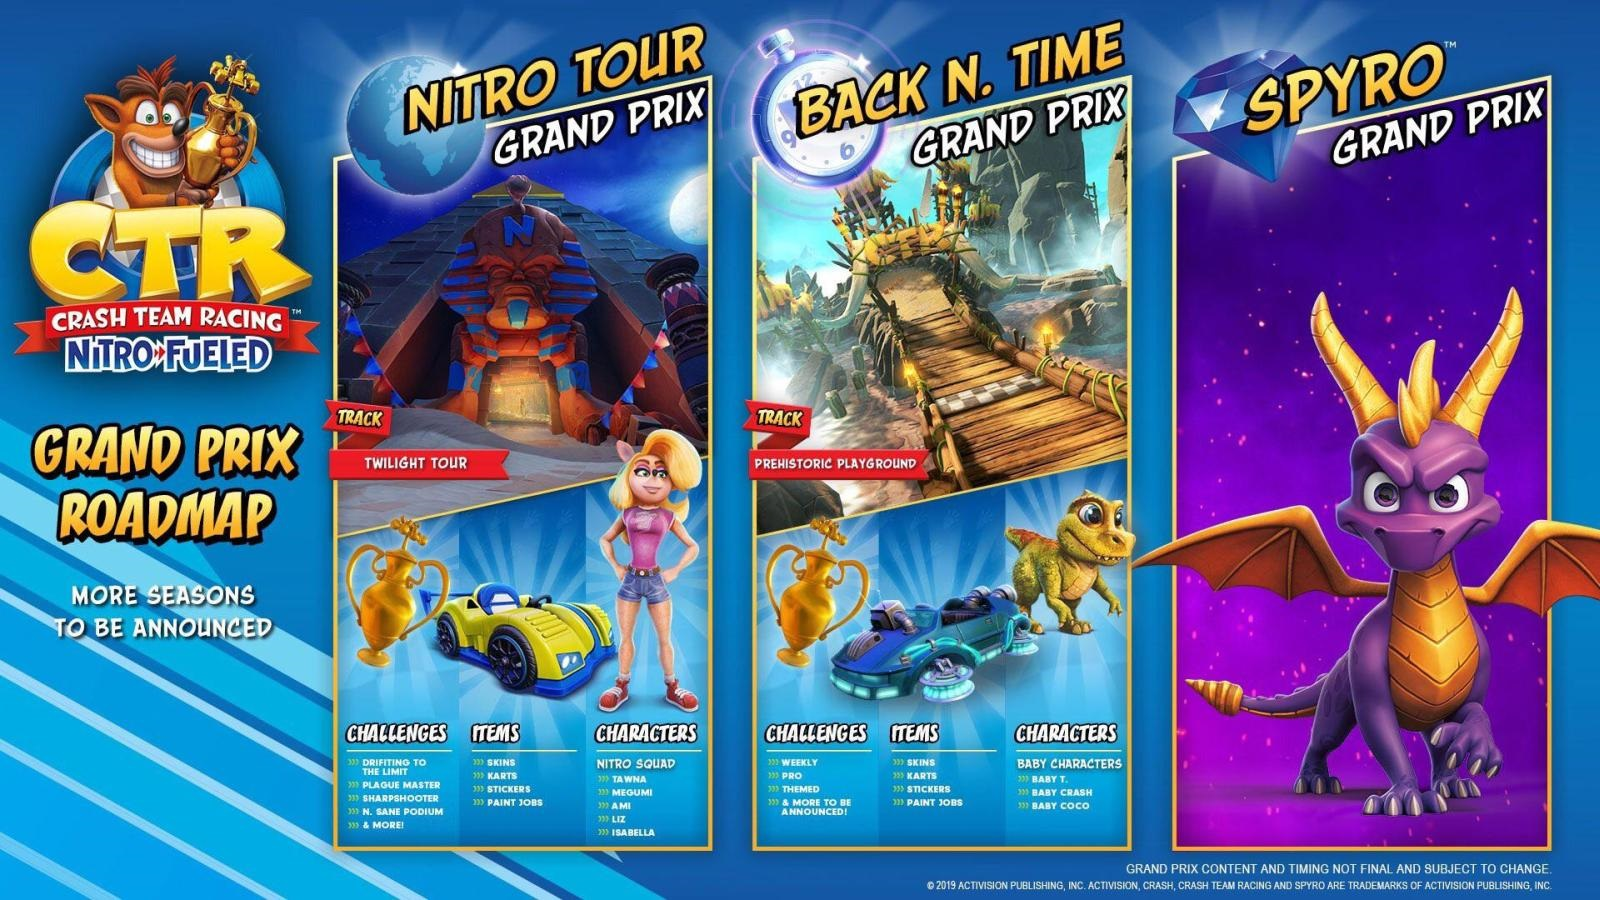 Crash Team Racing Nitro-Fueled; screenshot: roadmap